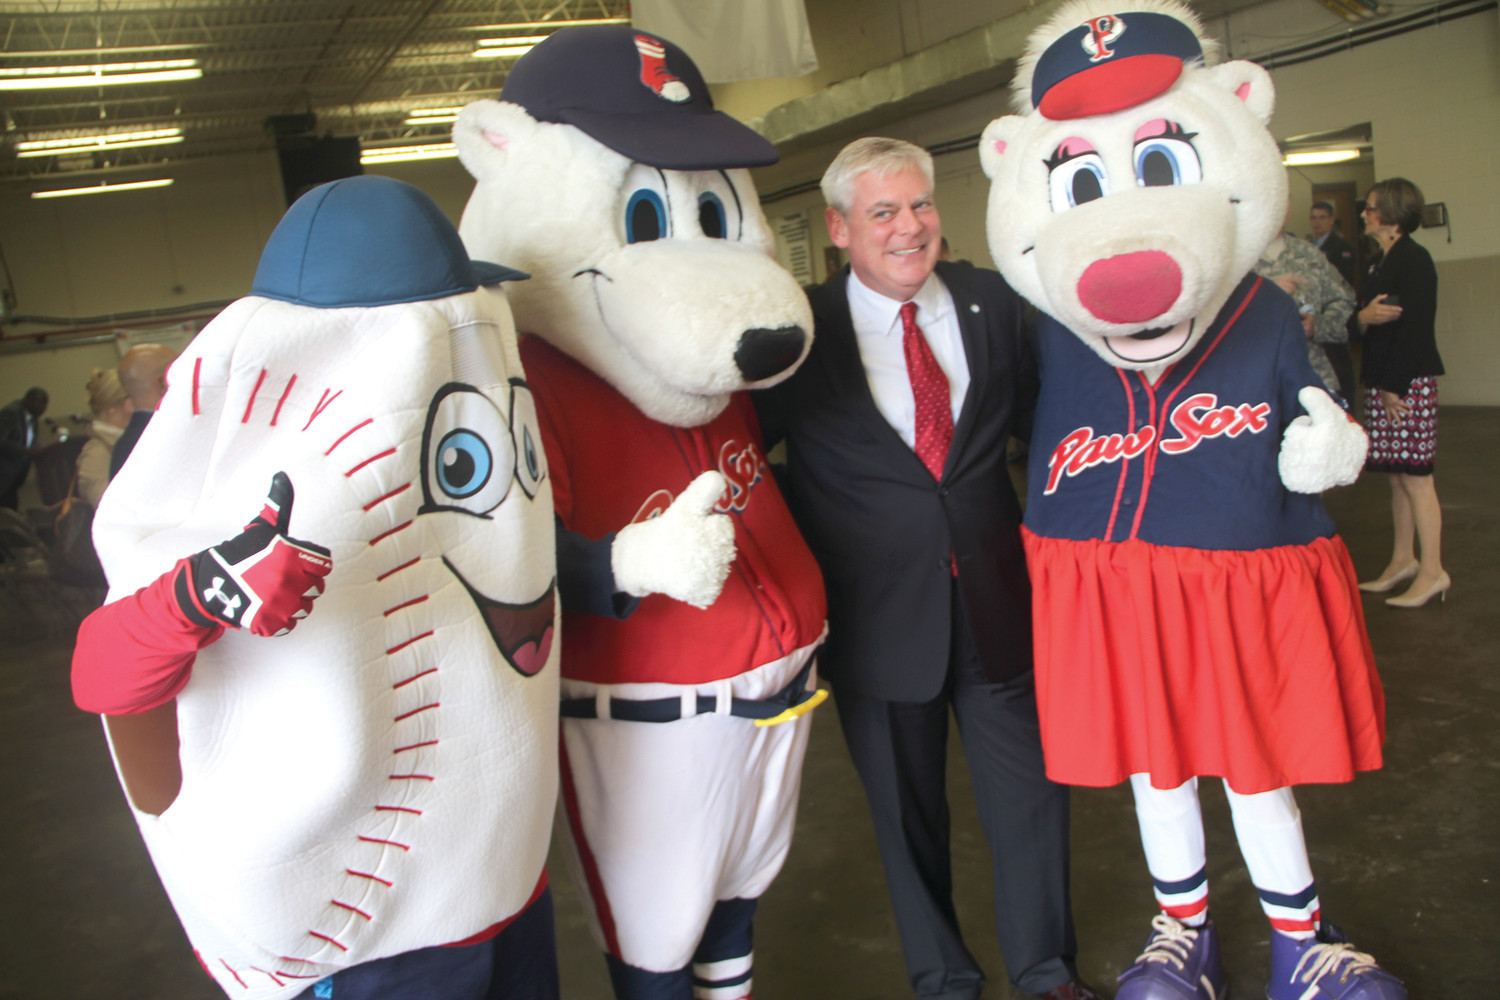 HIS FANS: Mayor Scott Avedisian is greeted by the PawSox mascots at Tuesday's kickoff of Operation Holiday Cheer. Avedisian joked he was negotiating for the Pawtucket Red Sox stadium to be built in Warwick.